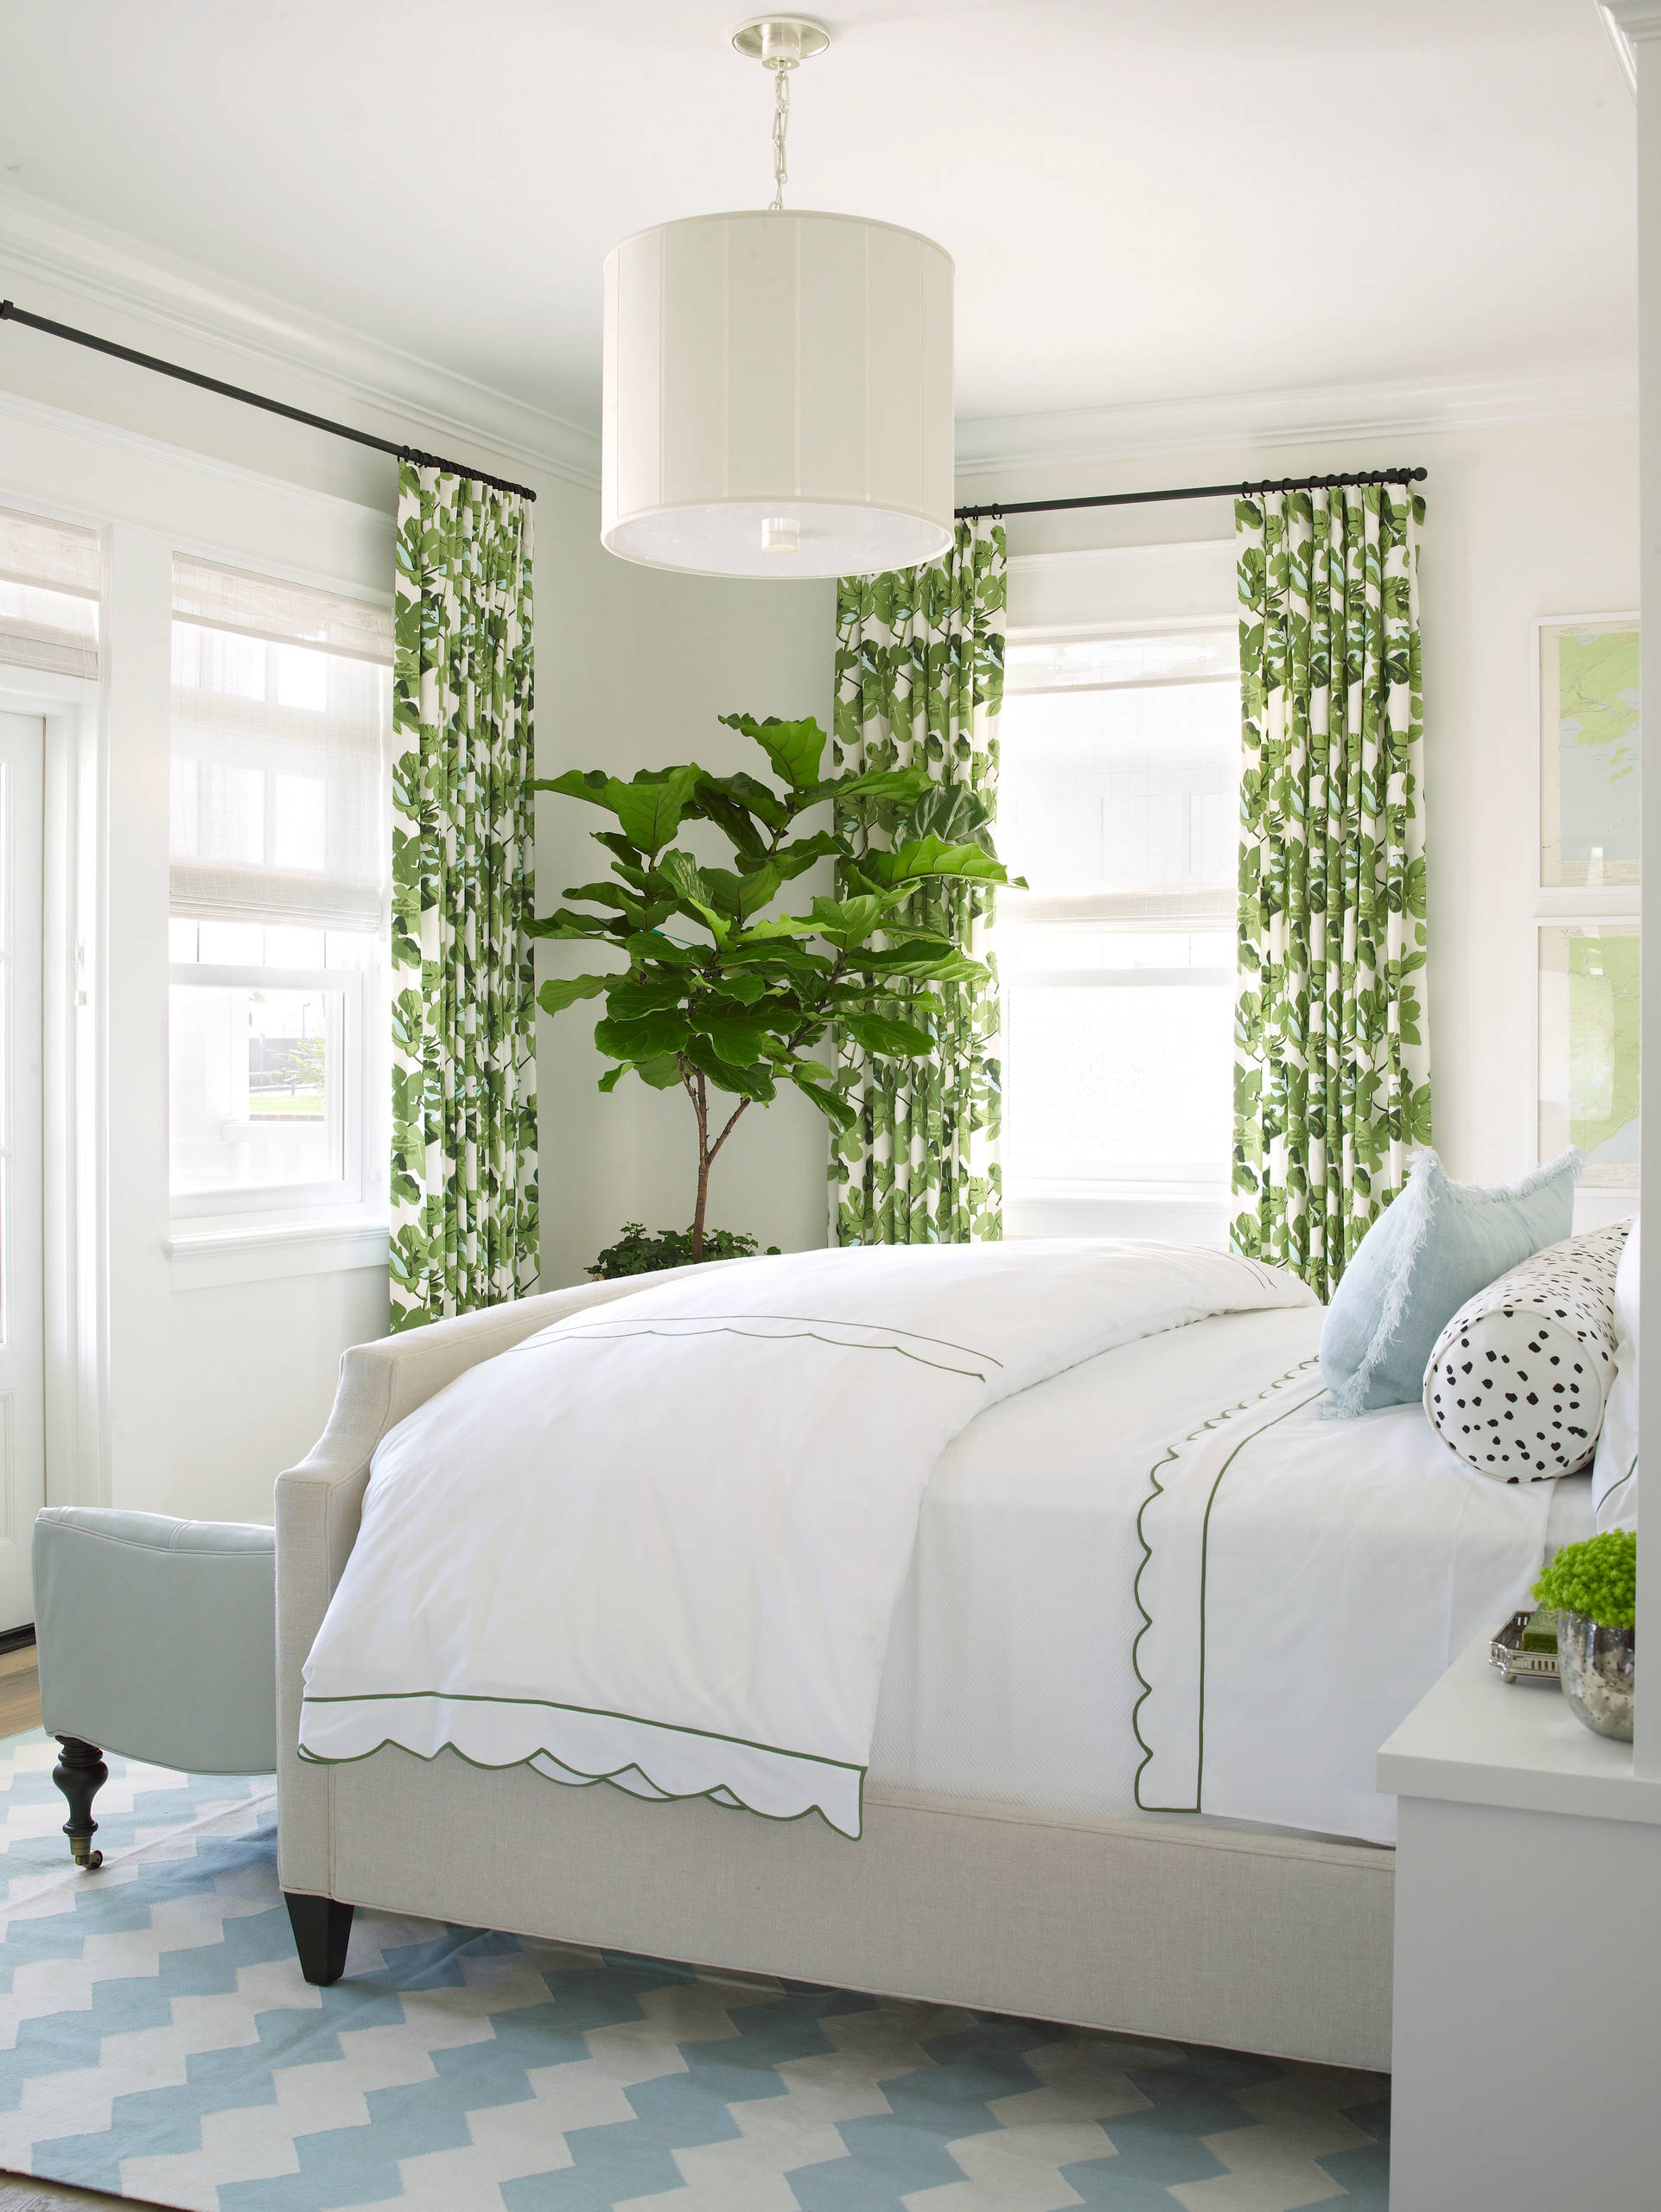 75 Beautiful Green Bedroom Pictures Ideas February 2021 Houzz